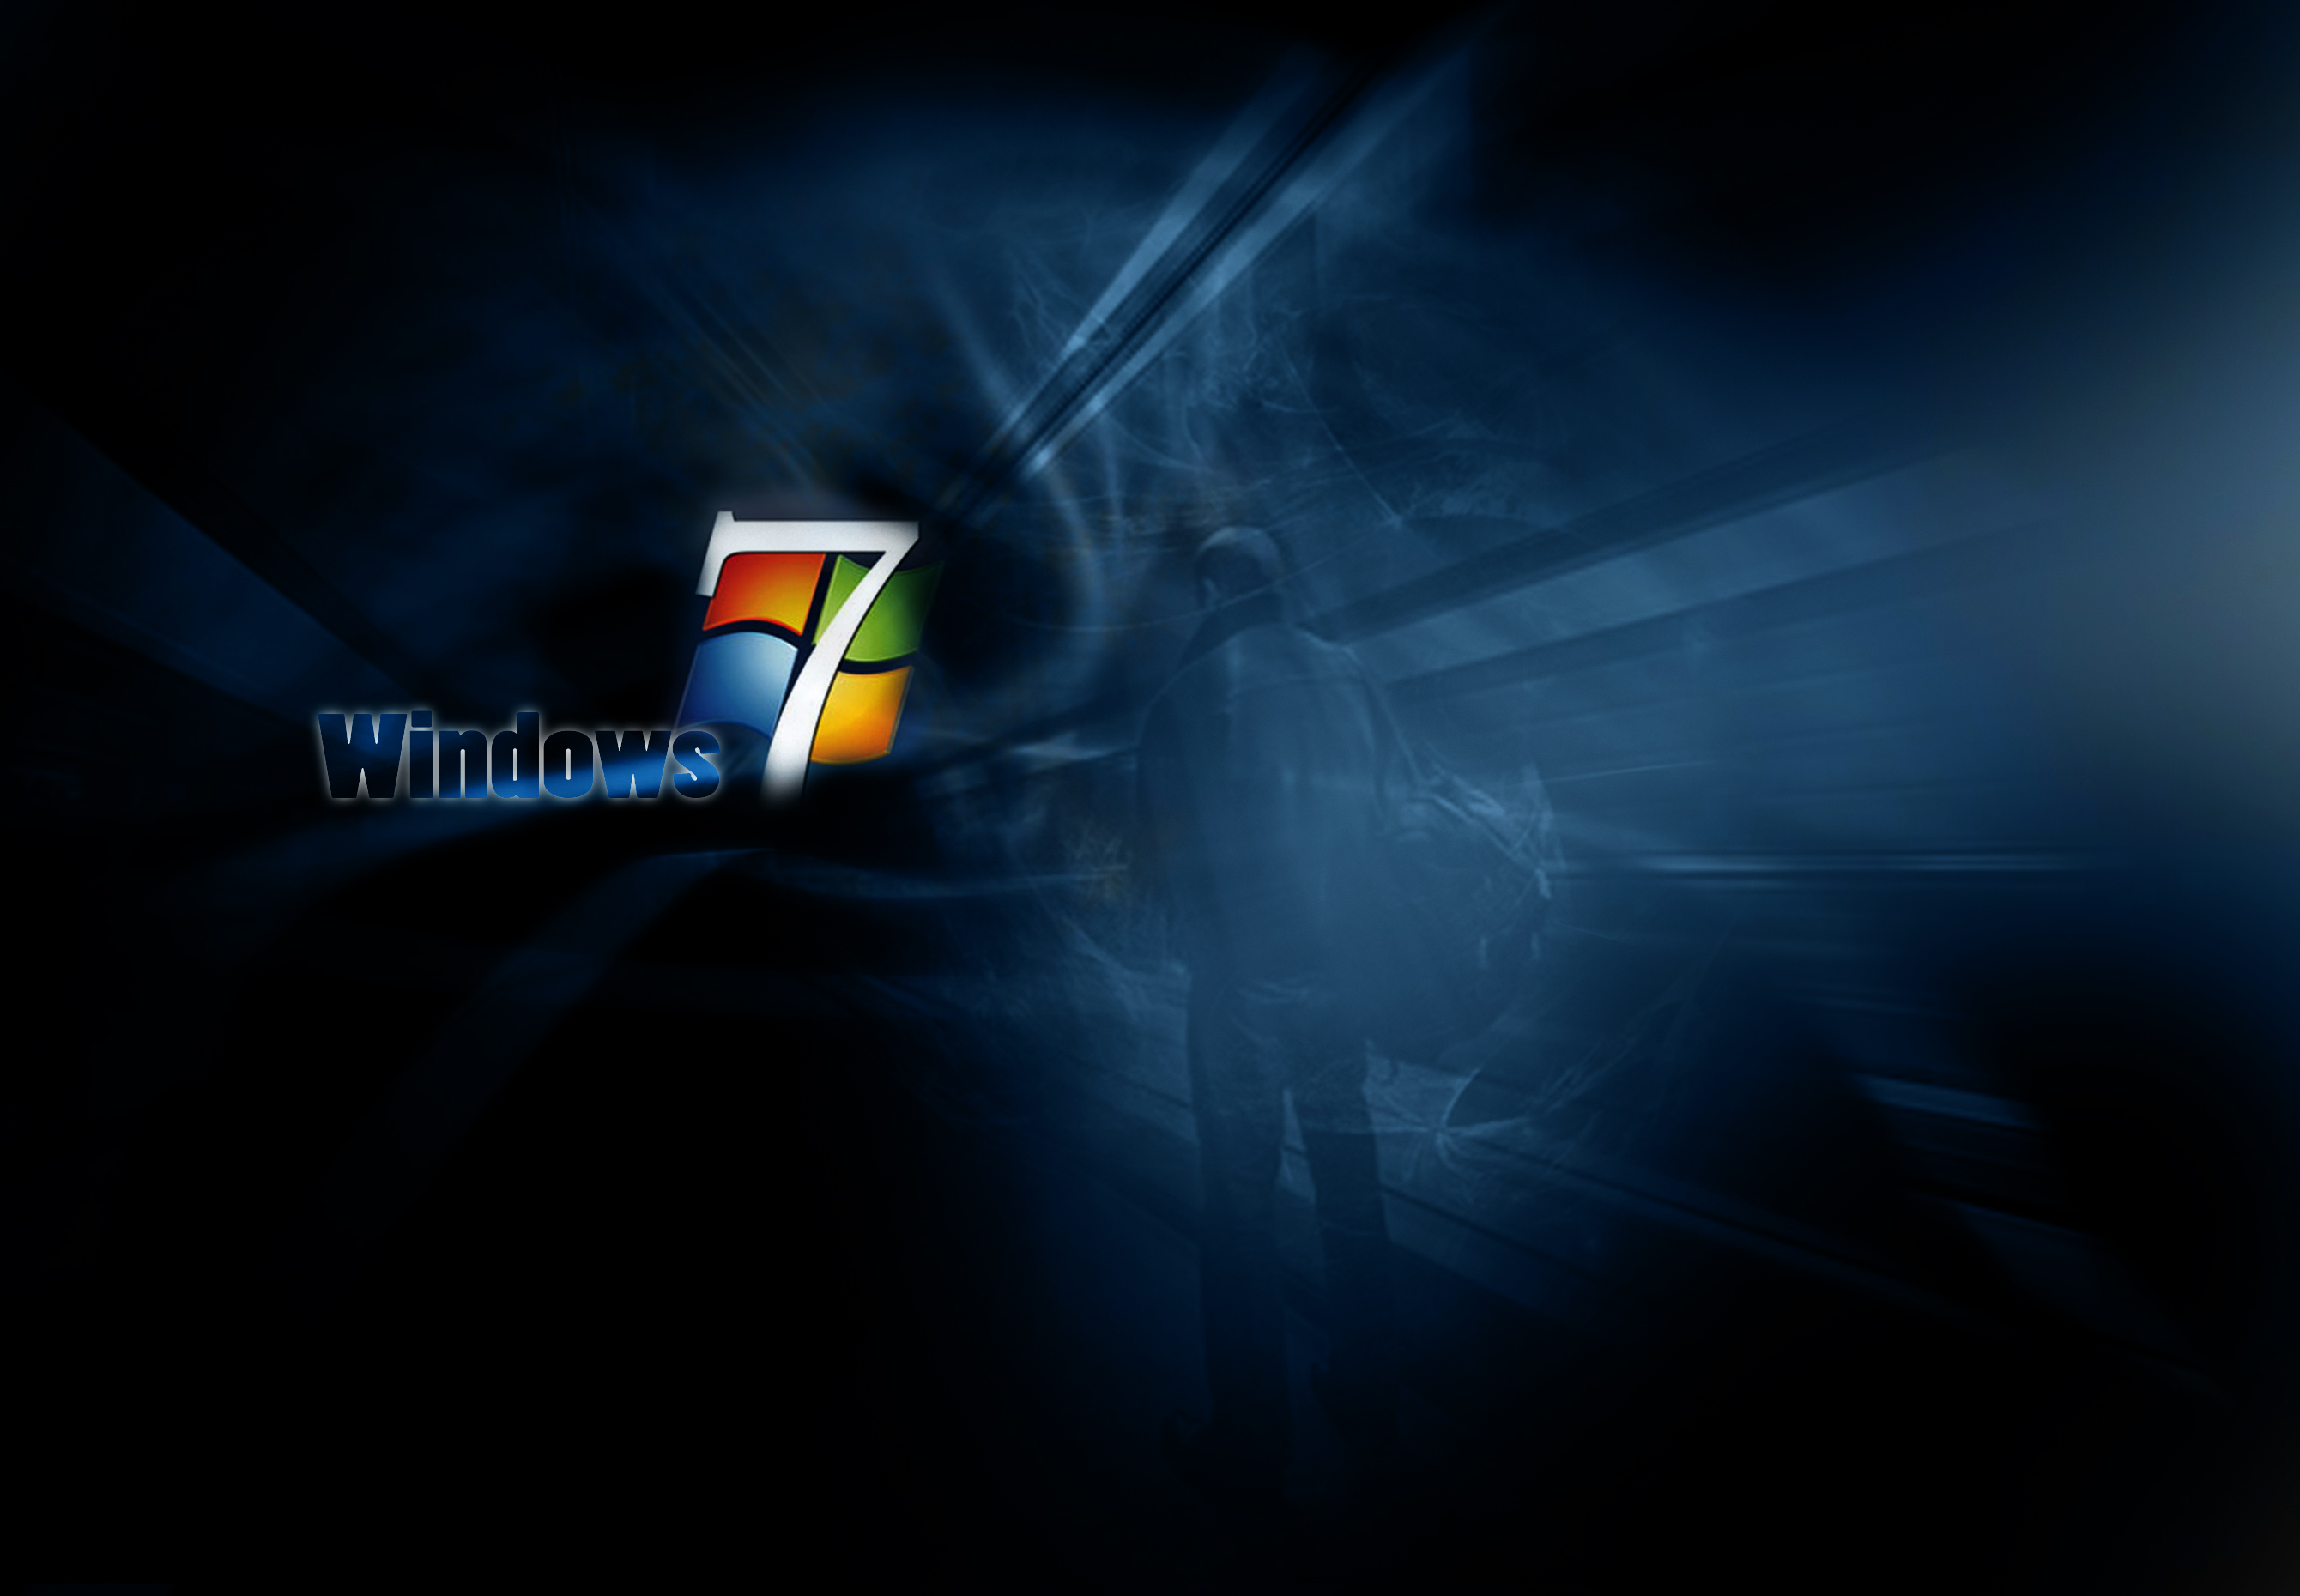 Windows_7_alone_wallpaper_by_privatedesigner